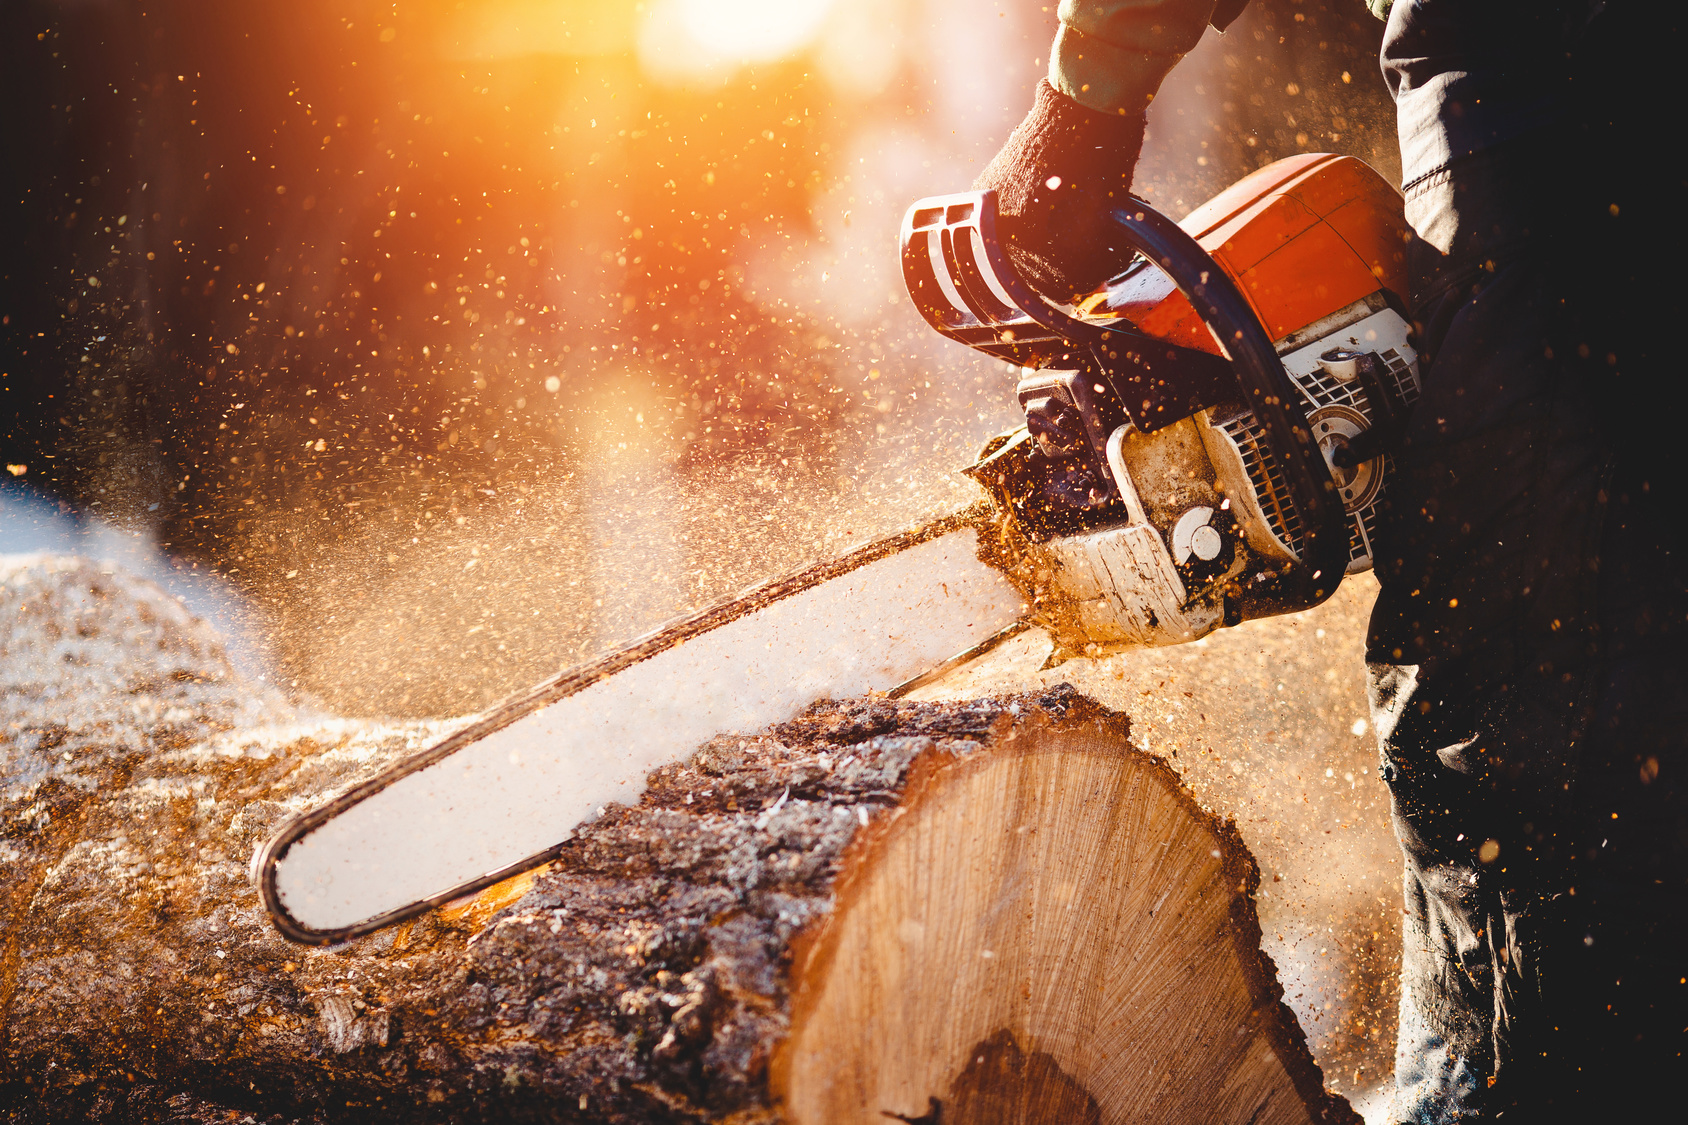 The Best Electric Chainsaws In 2019 - Detailed Buyer's Guide